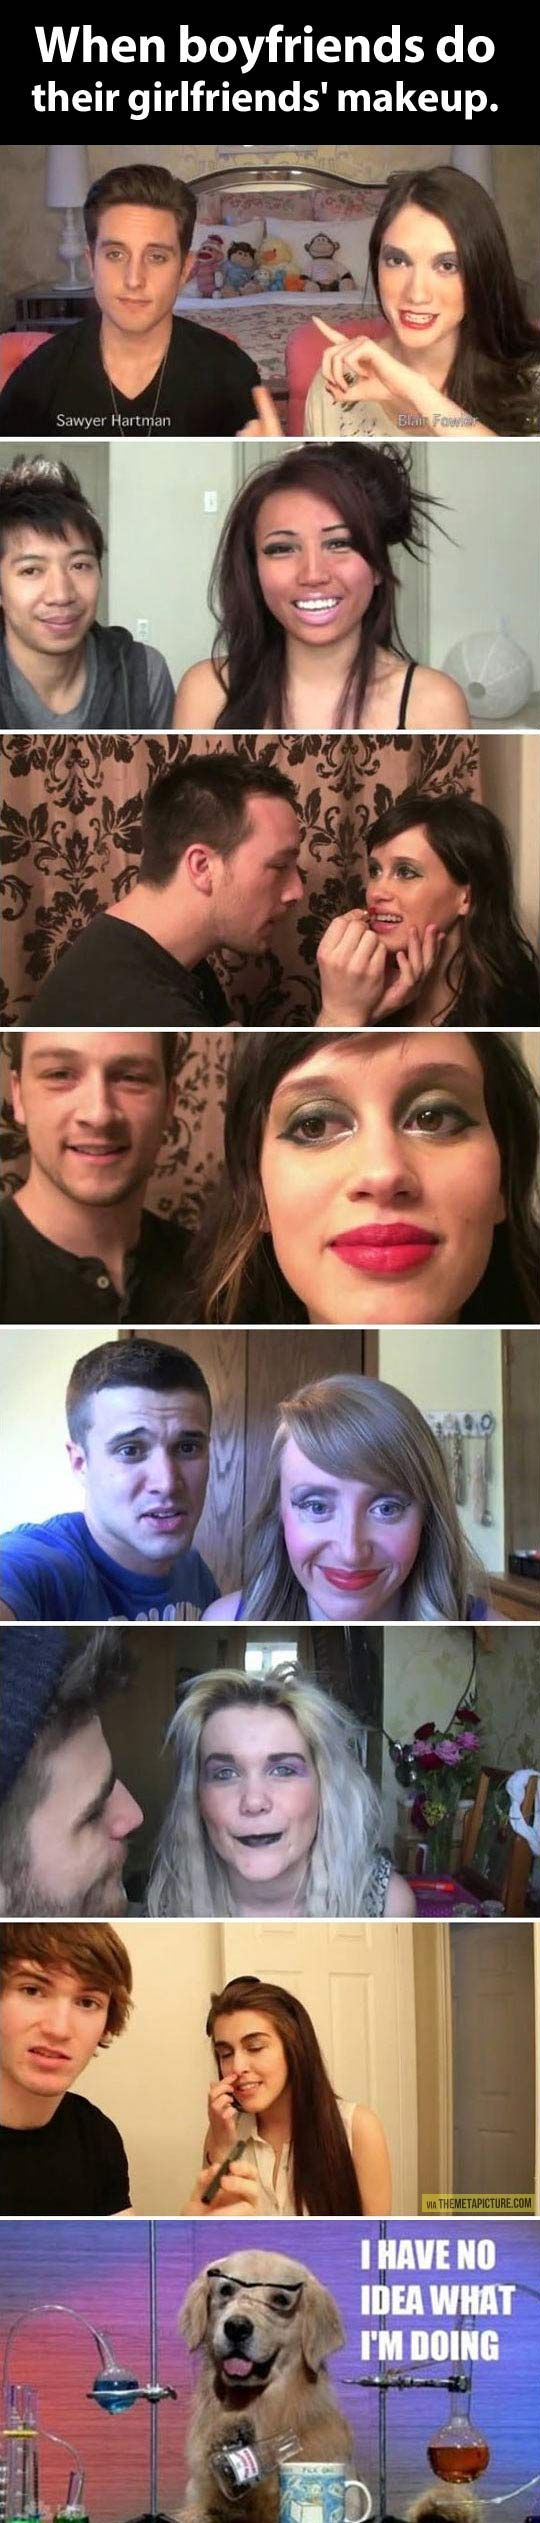 When boyfriends do their girl's makeup… this made me laugh